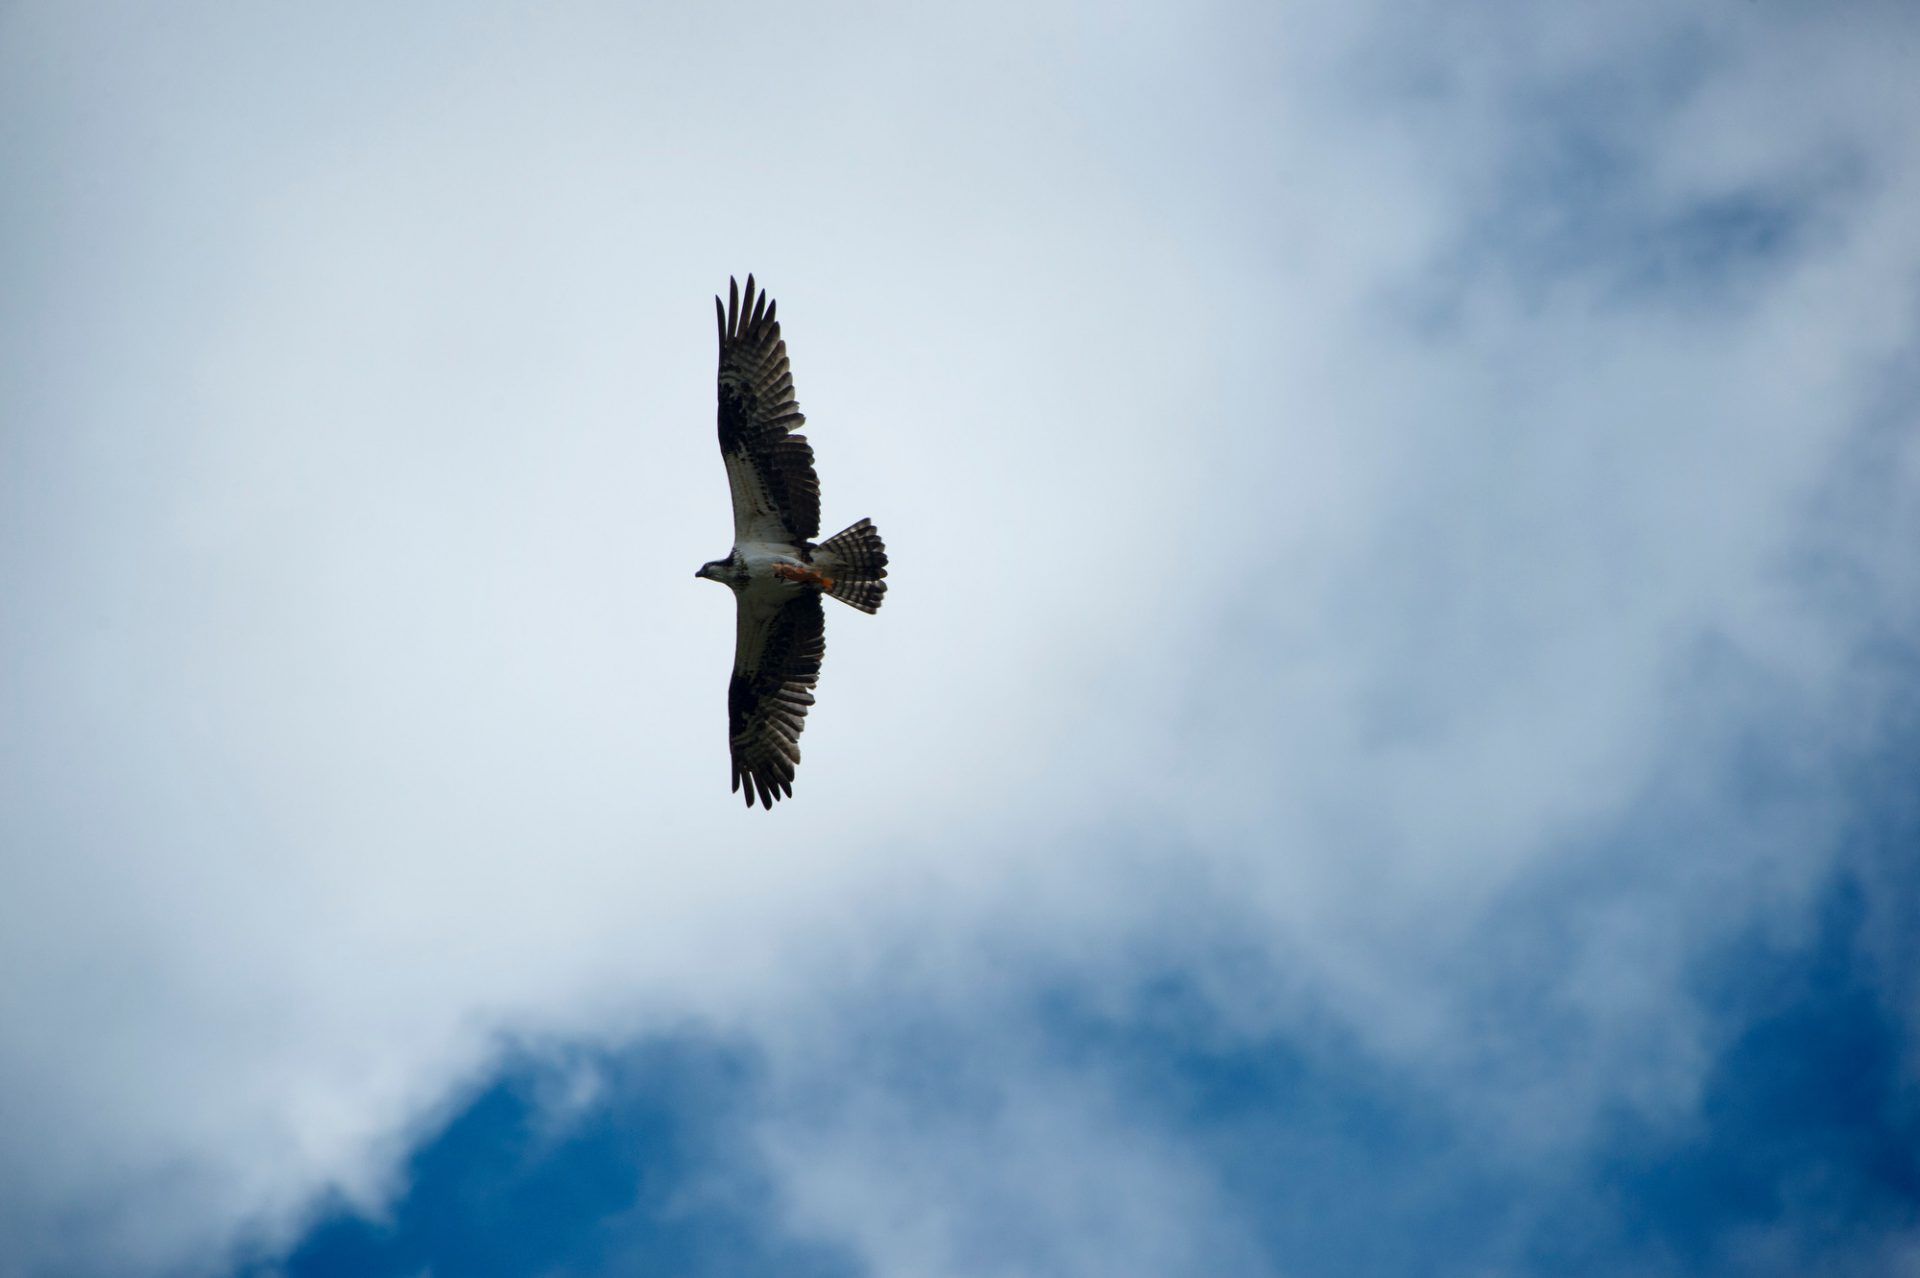 Photo: A hawk soars overhead at Parque Jaime Duque in Colombia.